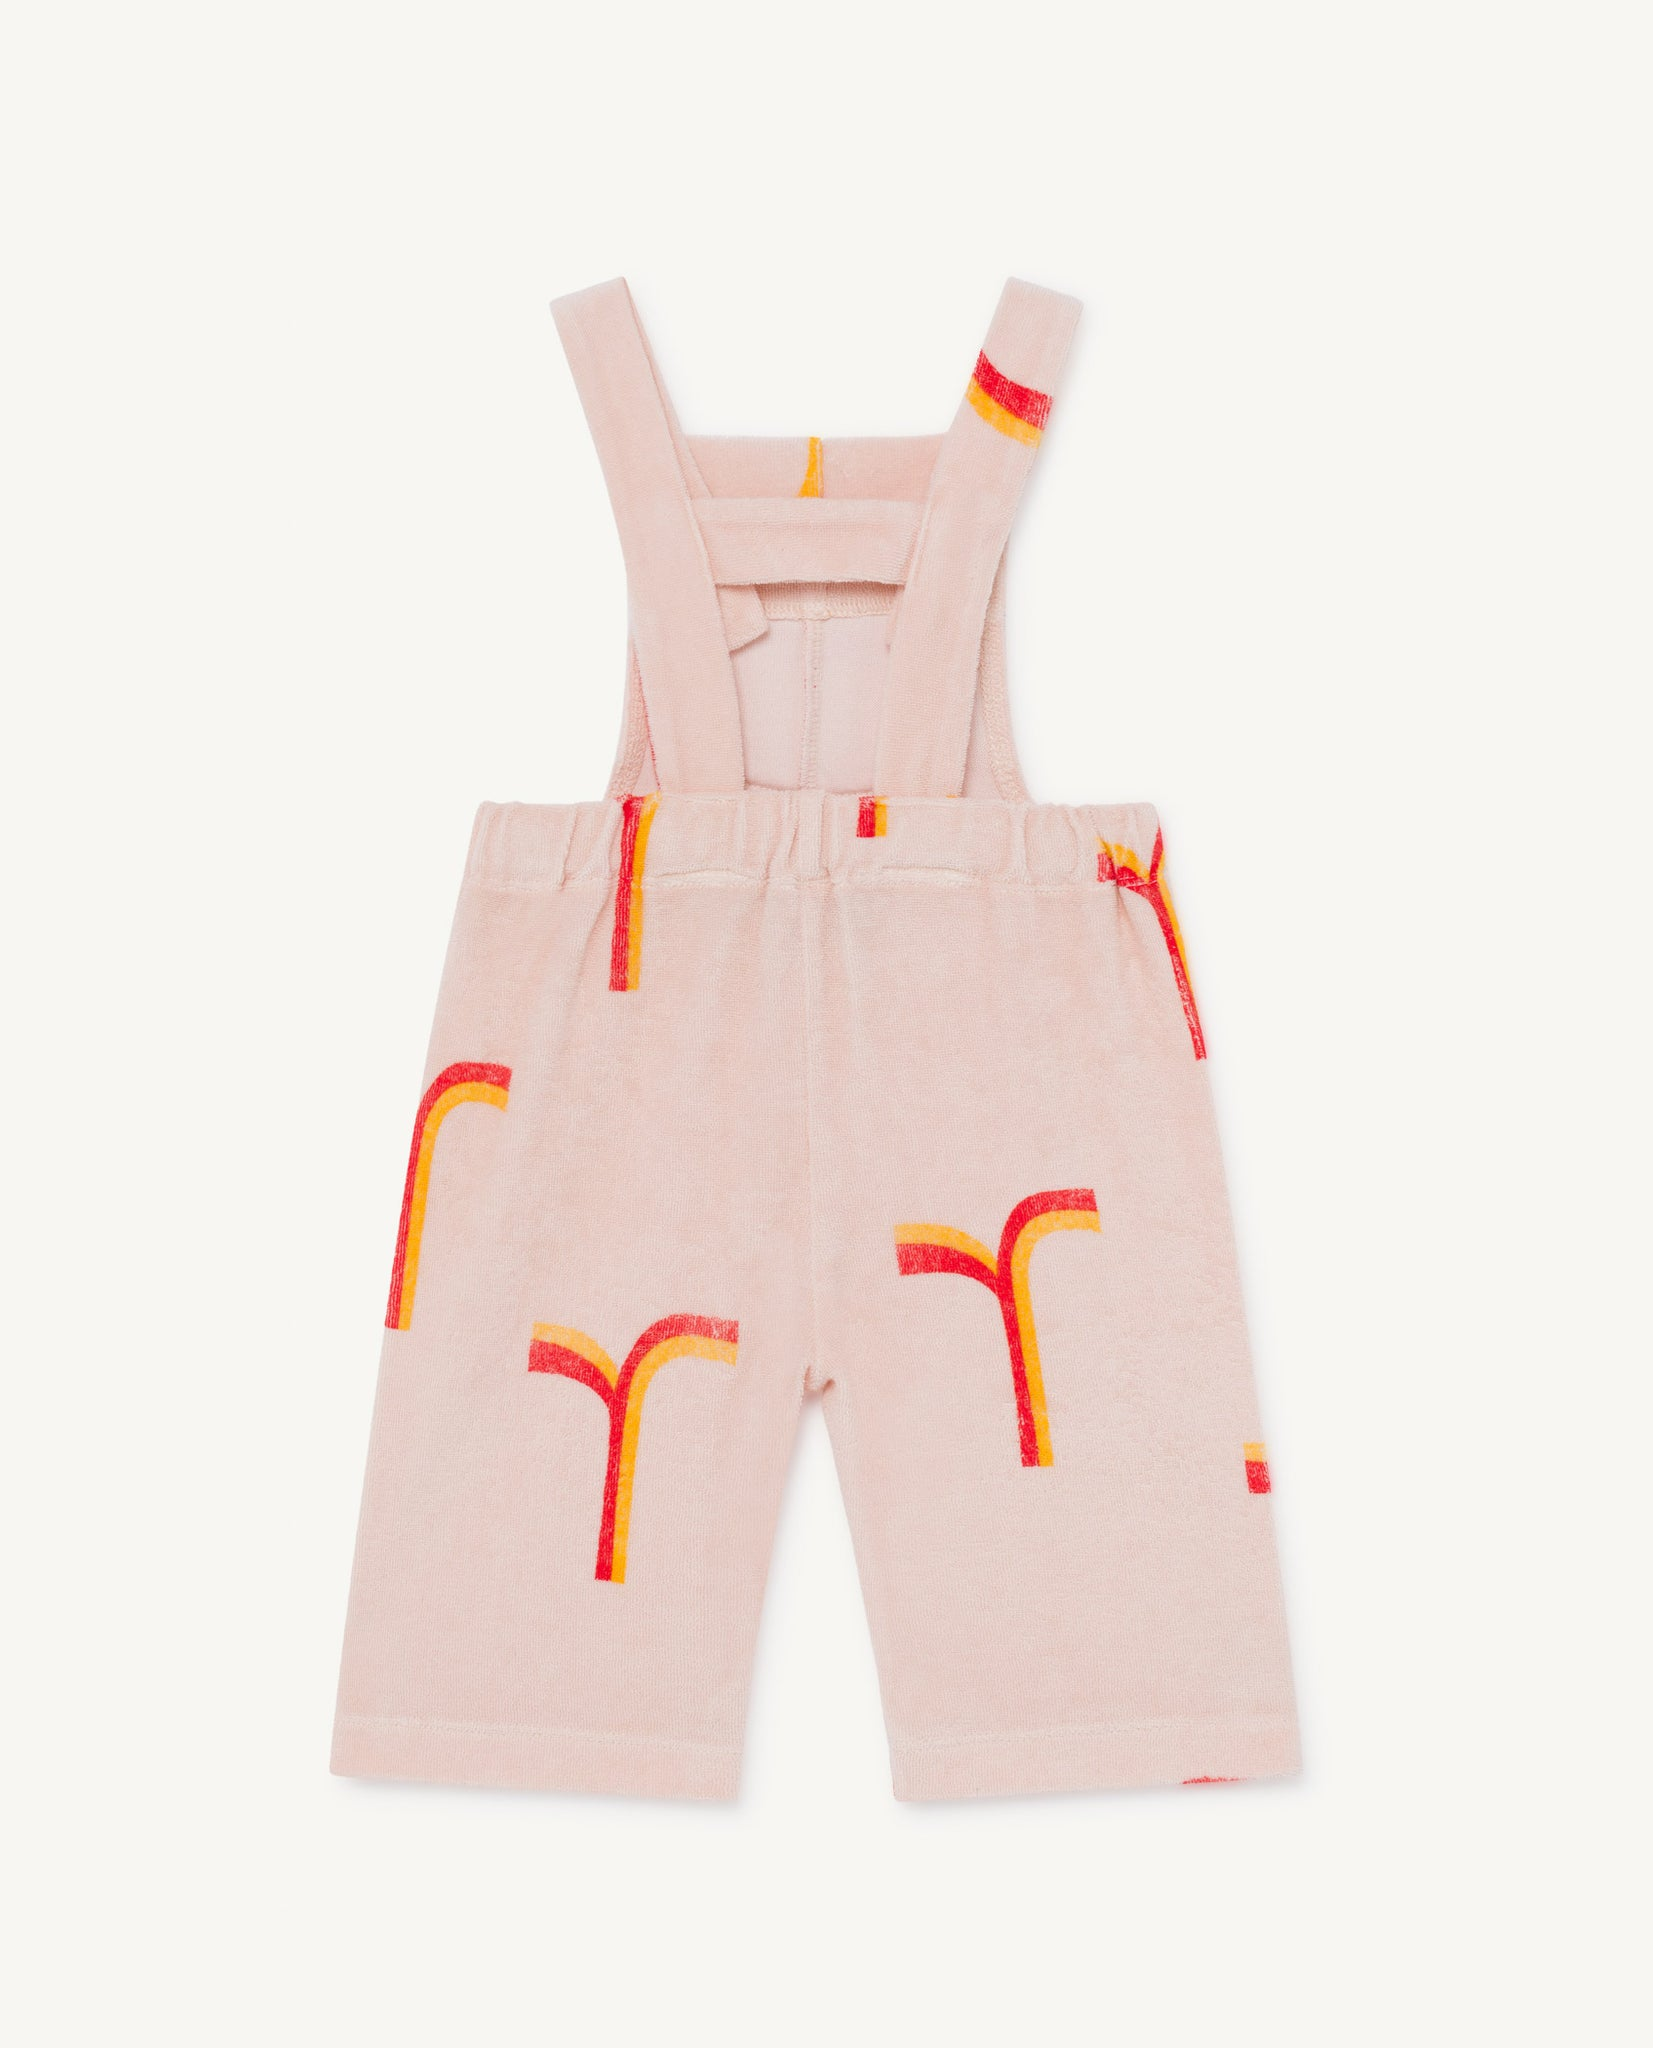 Eagle Baby Dungaree - Rose Geomatric